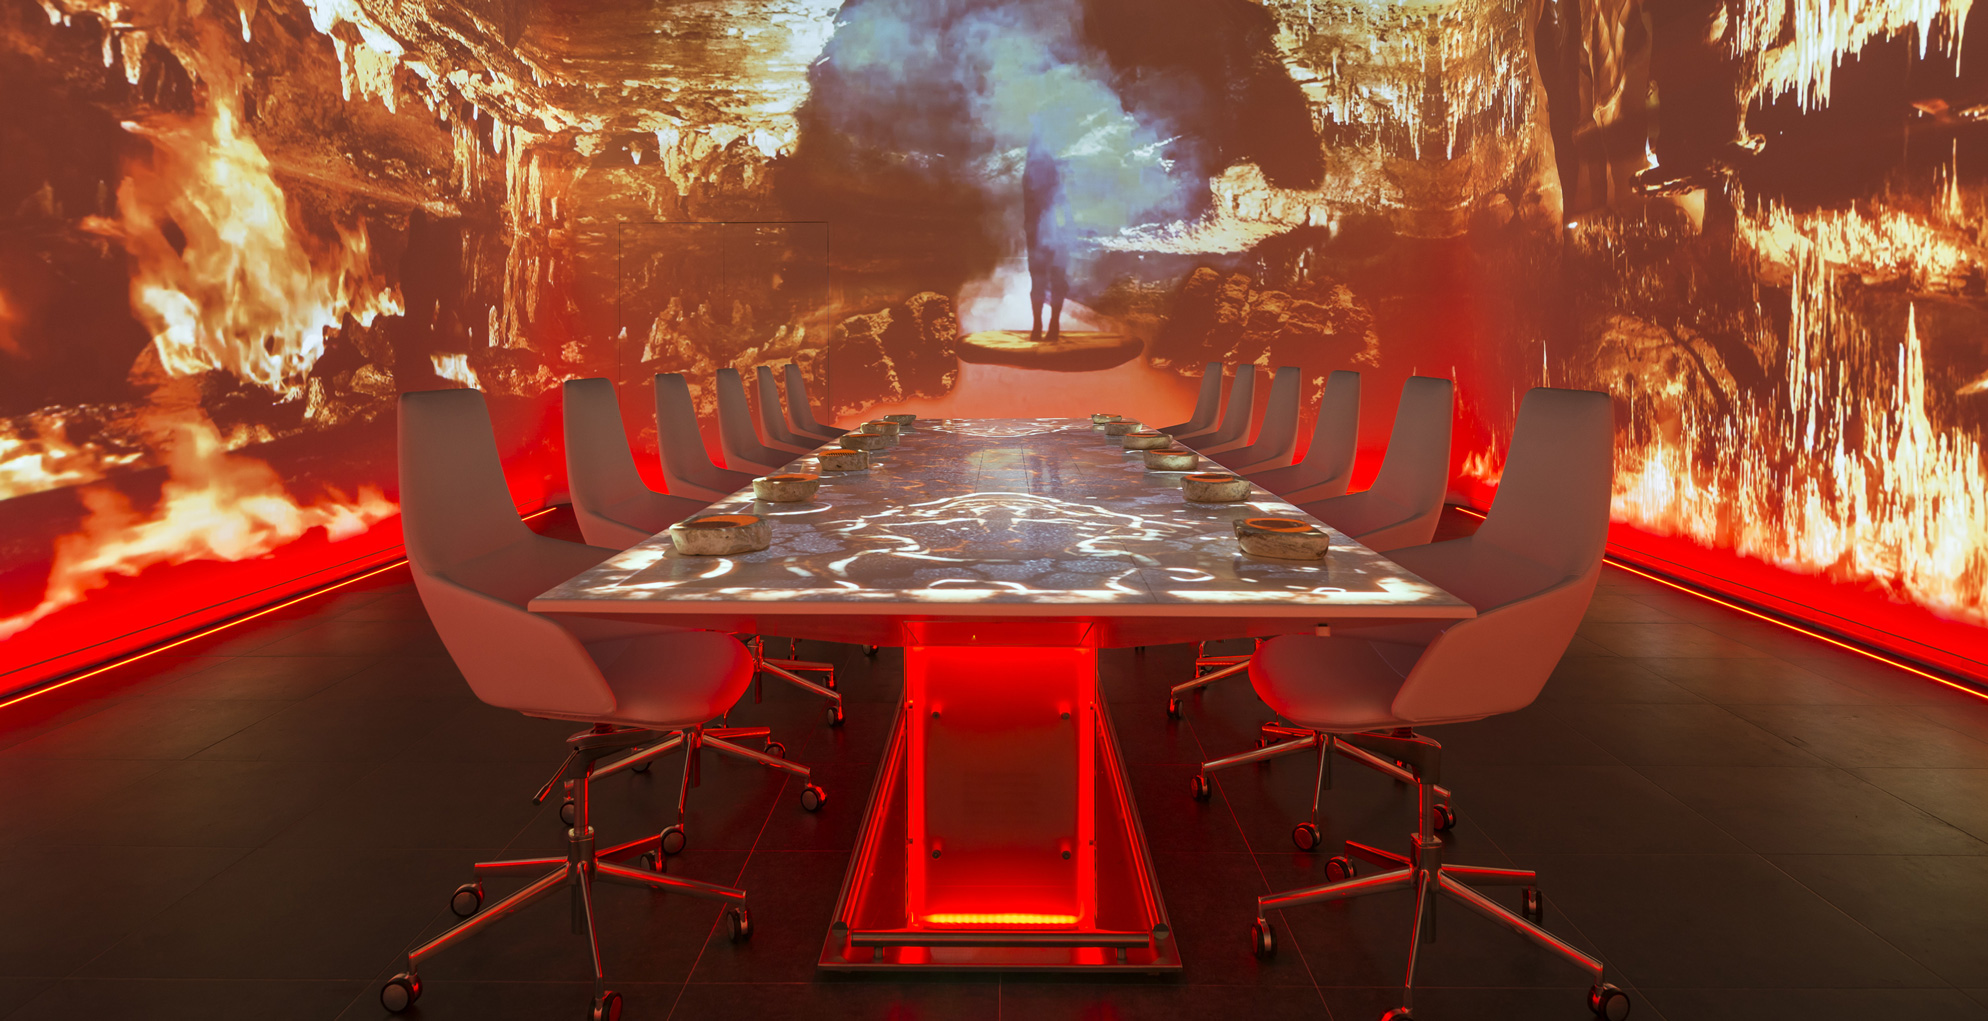 How about a movie with dinner at the world's most expensive restaurant?